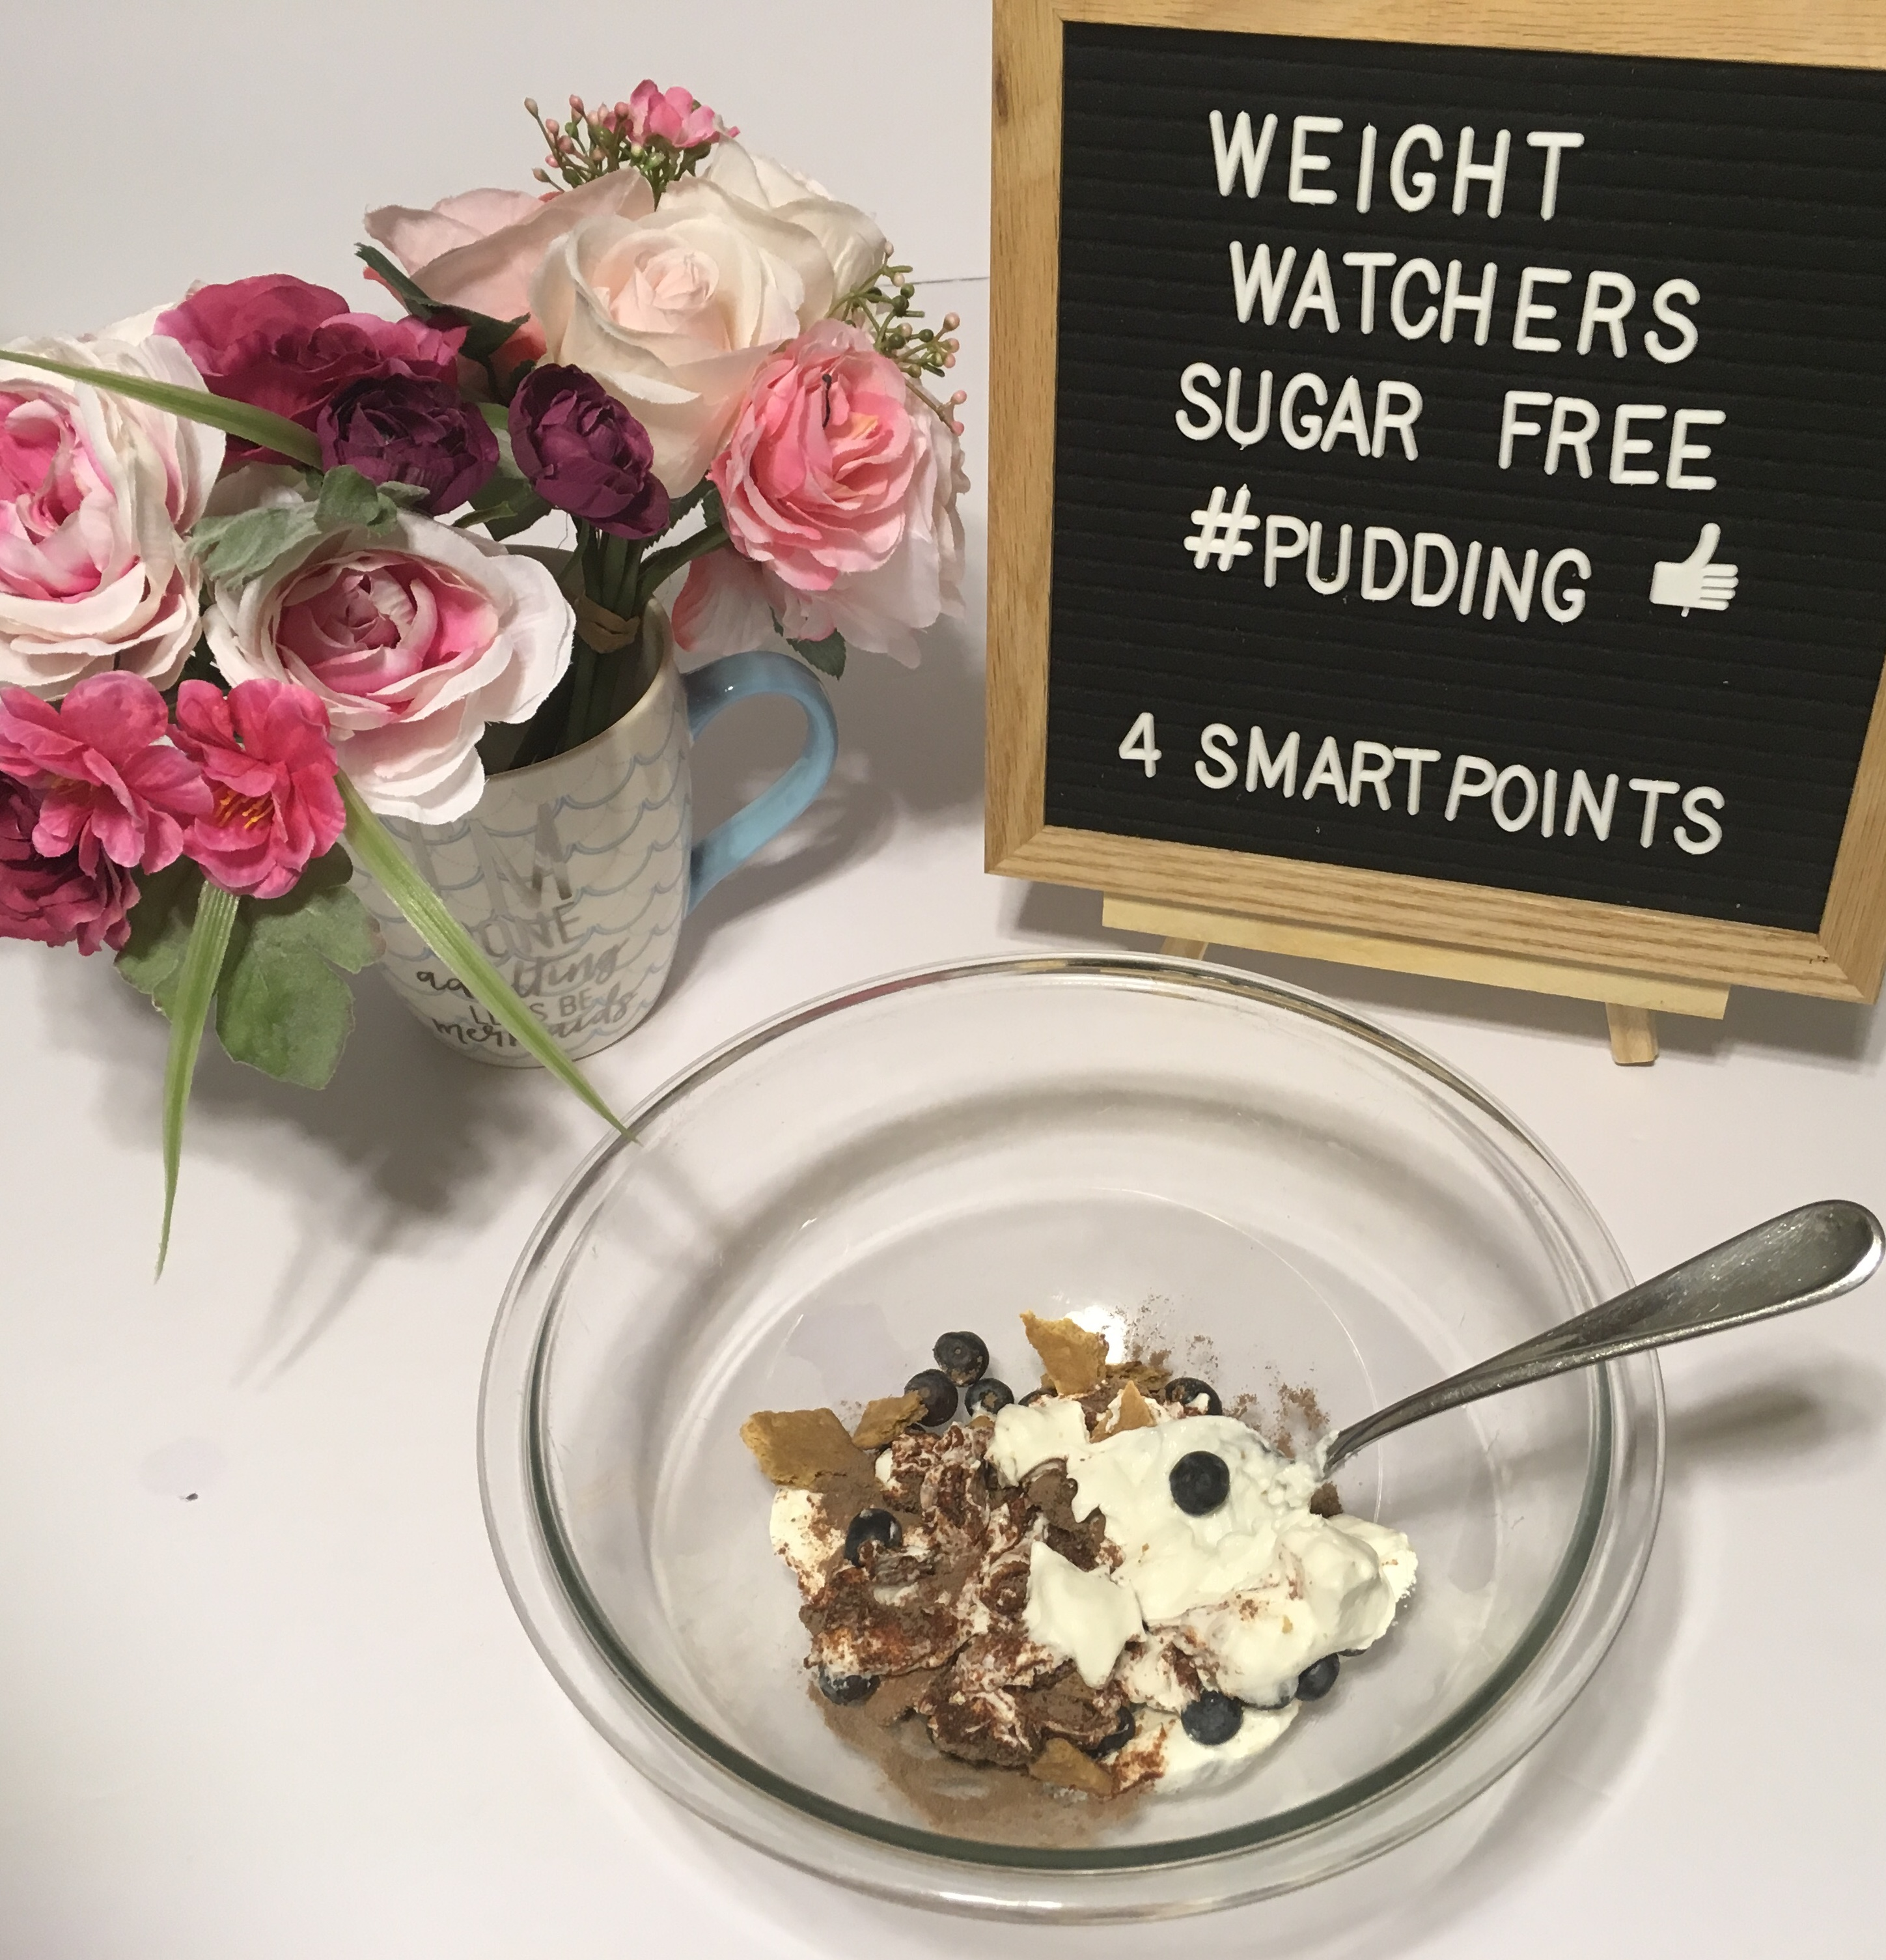 Weight Watchers Sugar Free Pudding Recipe- Just 4 SmartPoints per serving